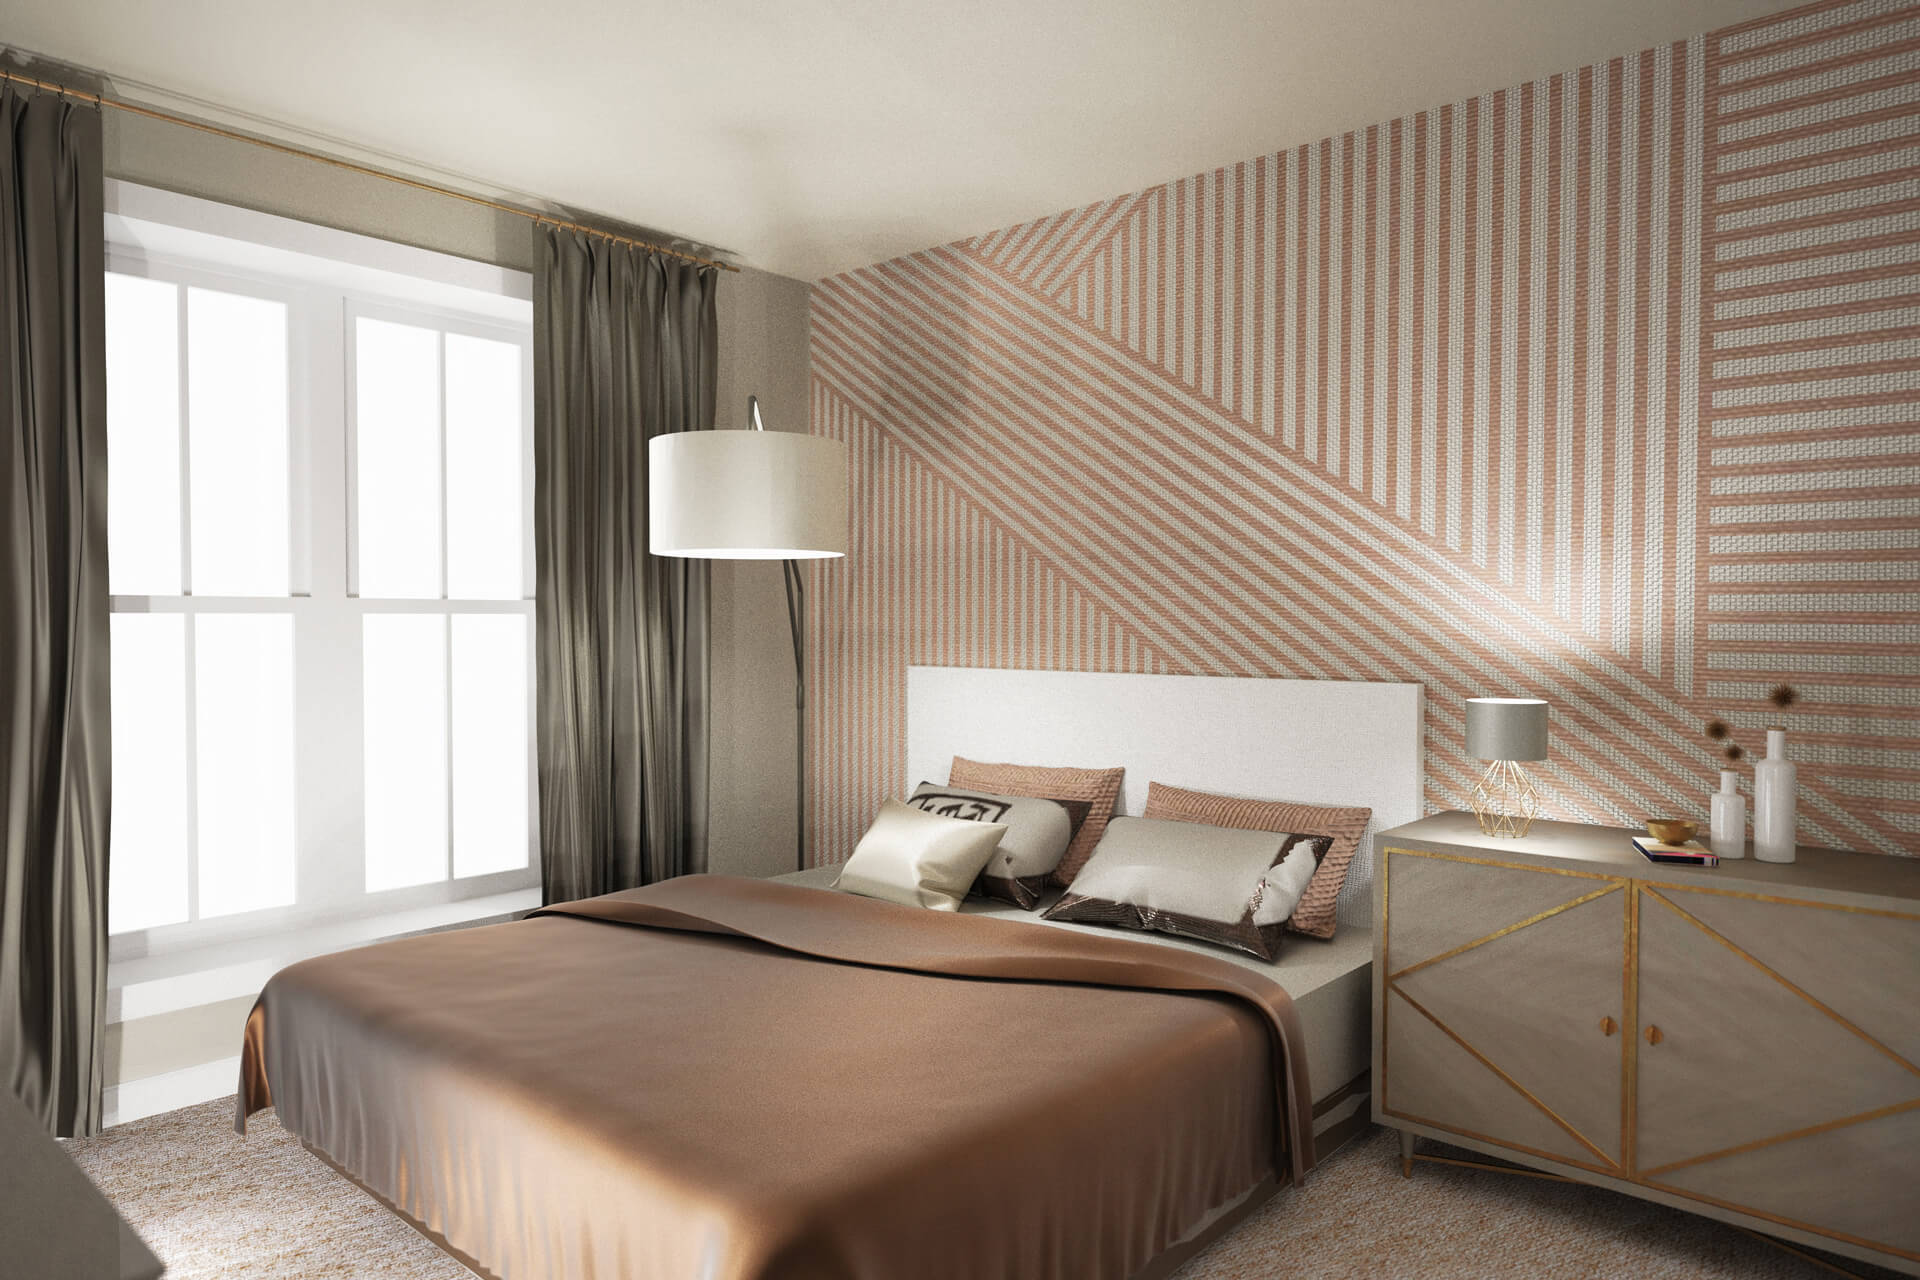 rendering of apartment bedroom at The Heights at Goose Creek Village apartments in Ashburn, VA with queen bed with brown and white linens, wallpapered walls, windows showing light, and armoir with lamp and toiletries on top